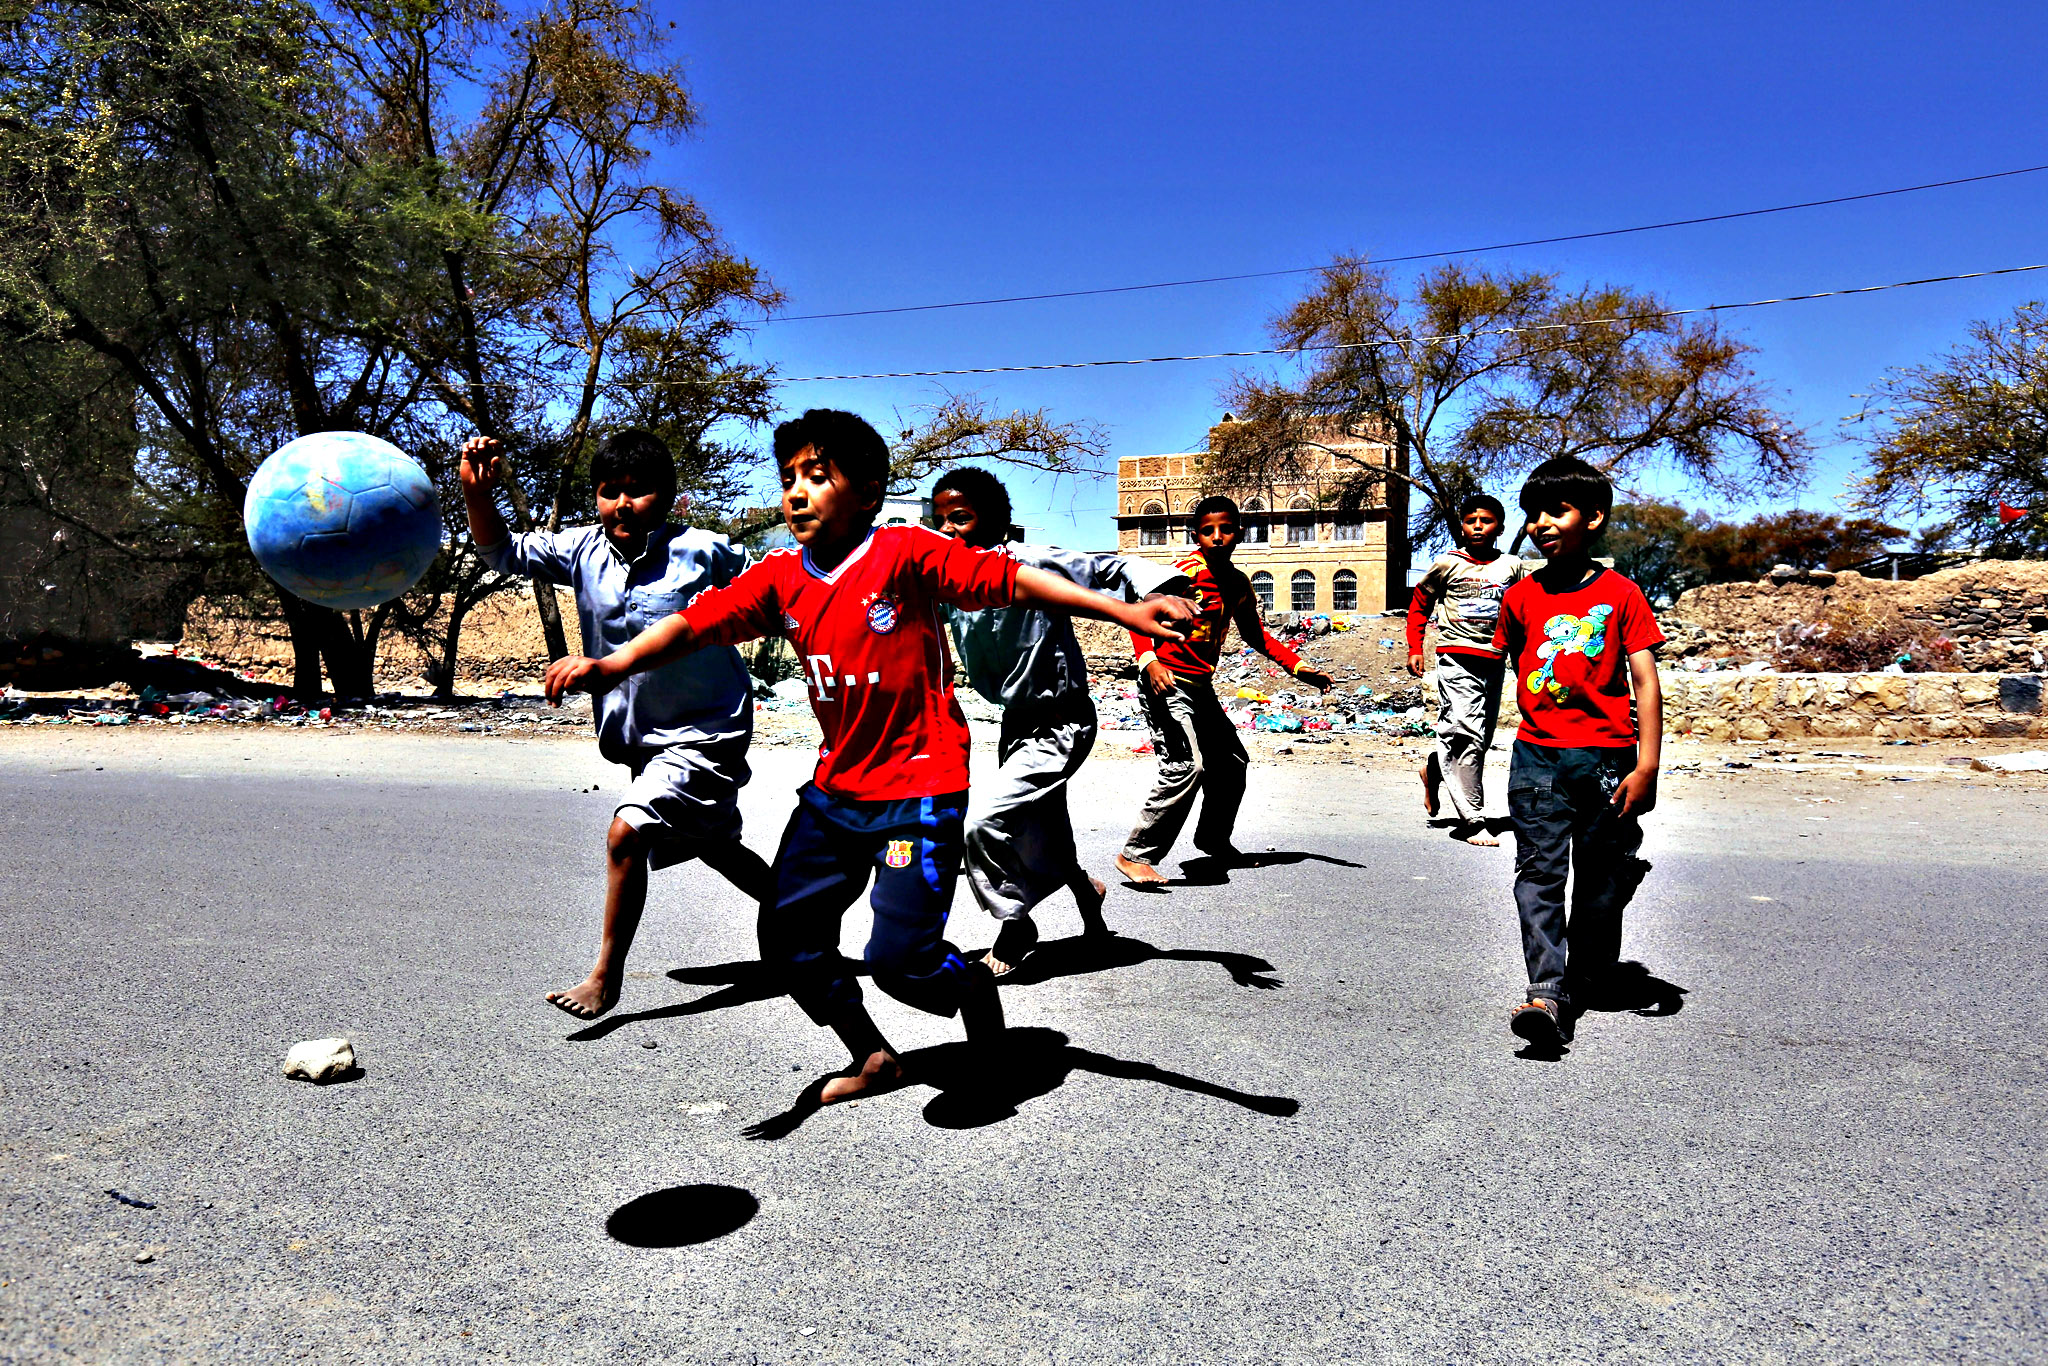 Young Yemenis play football on a street in Sanaa, Yemen on Thursday. Schools and universities have remained closed in Sanaa and several Yemeni cities since the Saudi-led coalition began its military operations on positions held by the Houthis and their allies across the country